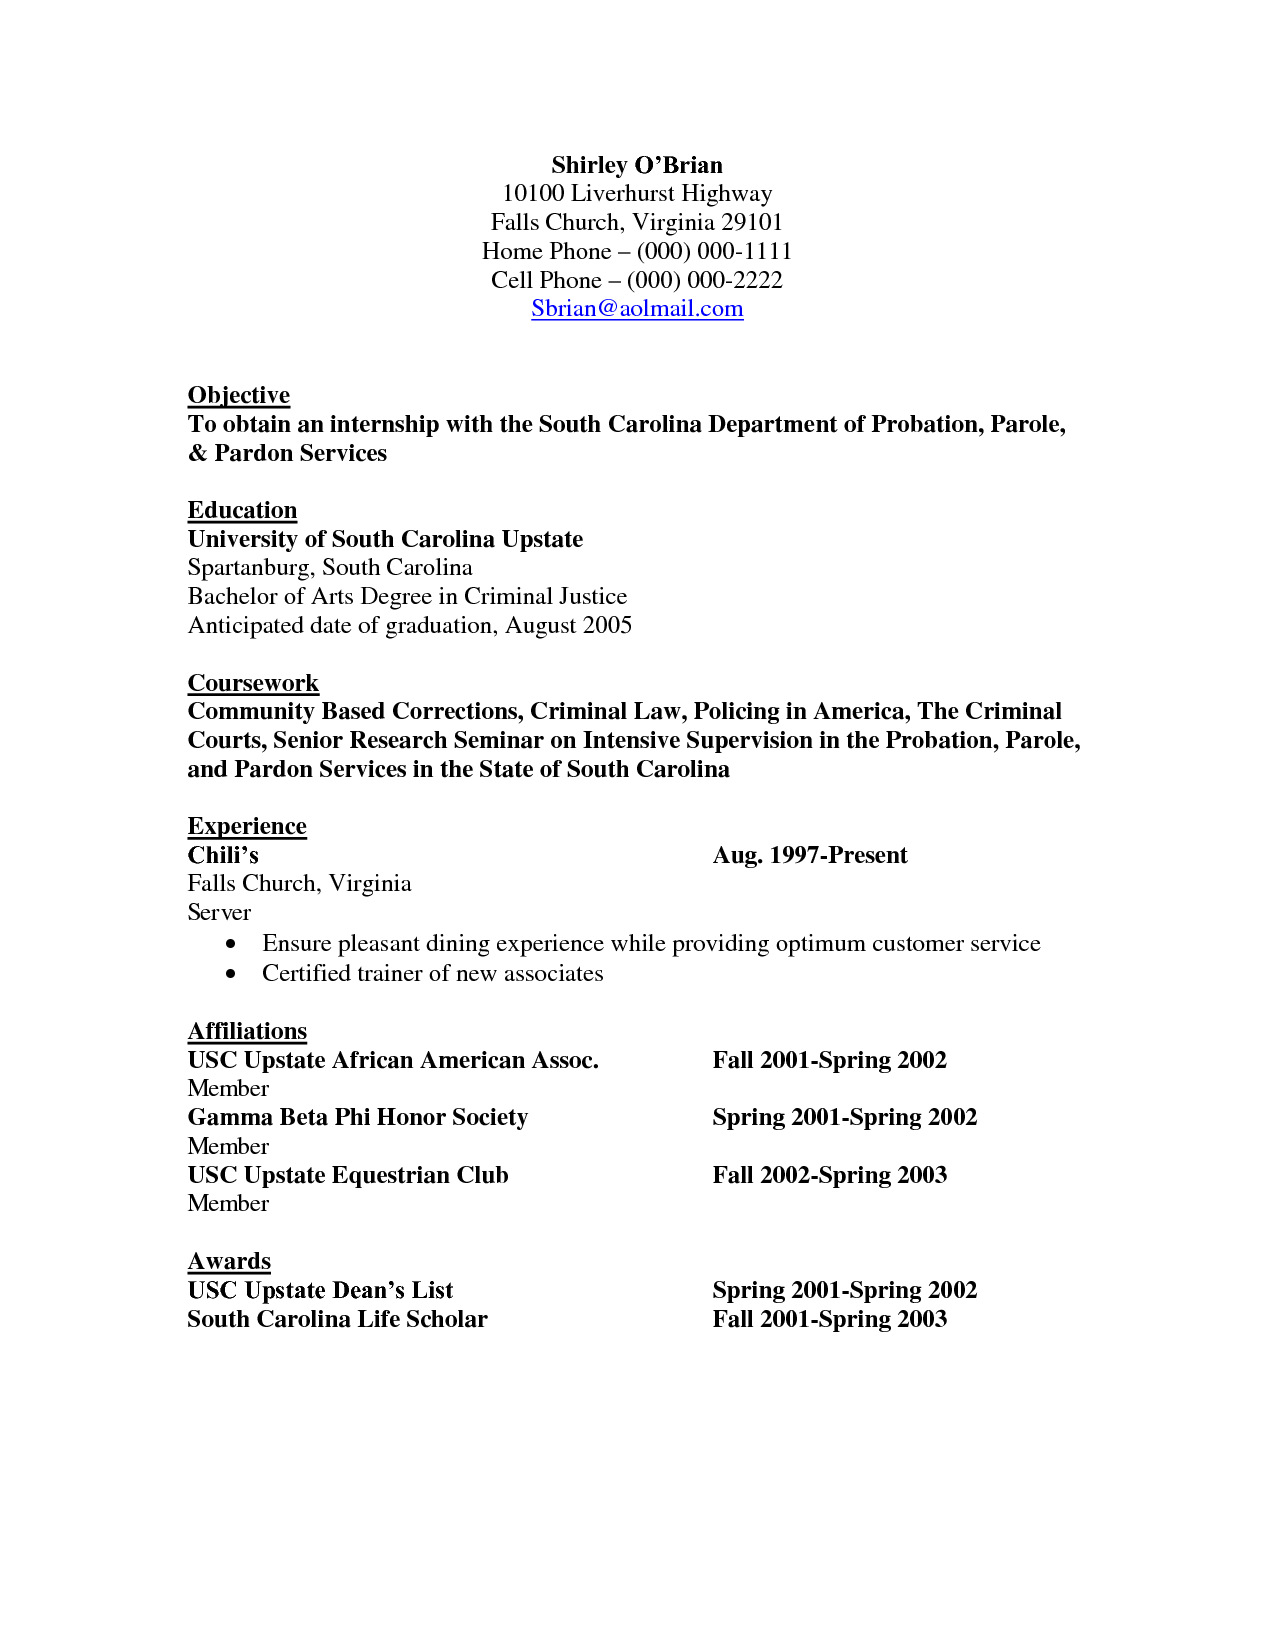 Internship Resume Template Objective Resume Criminal Justice  Httpwwwresumecareer